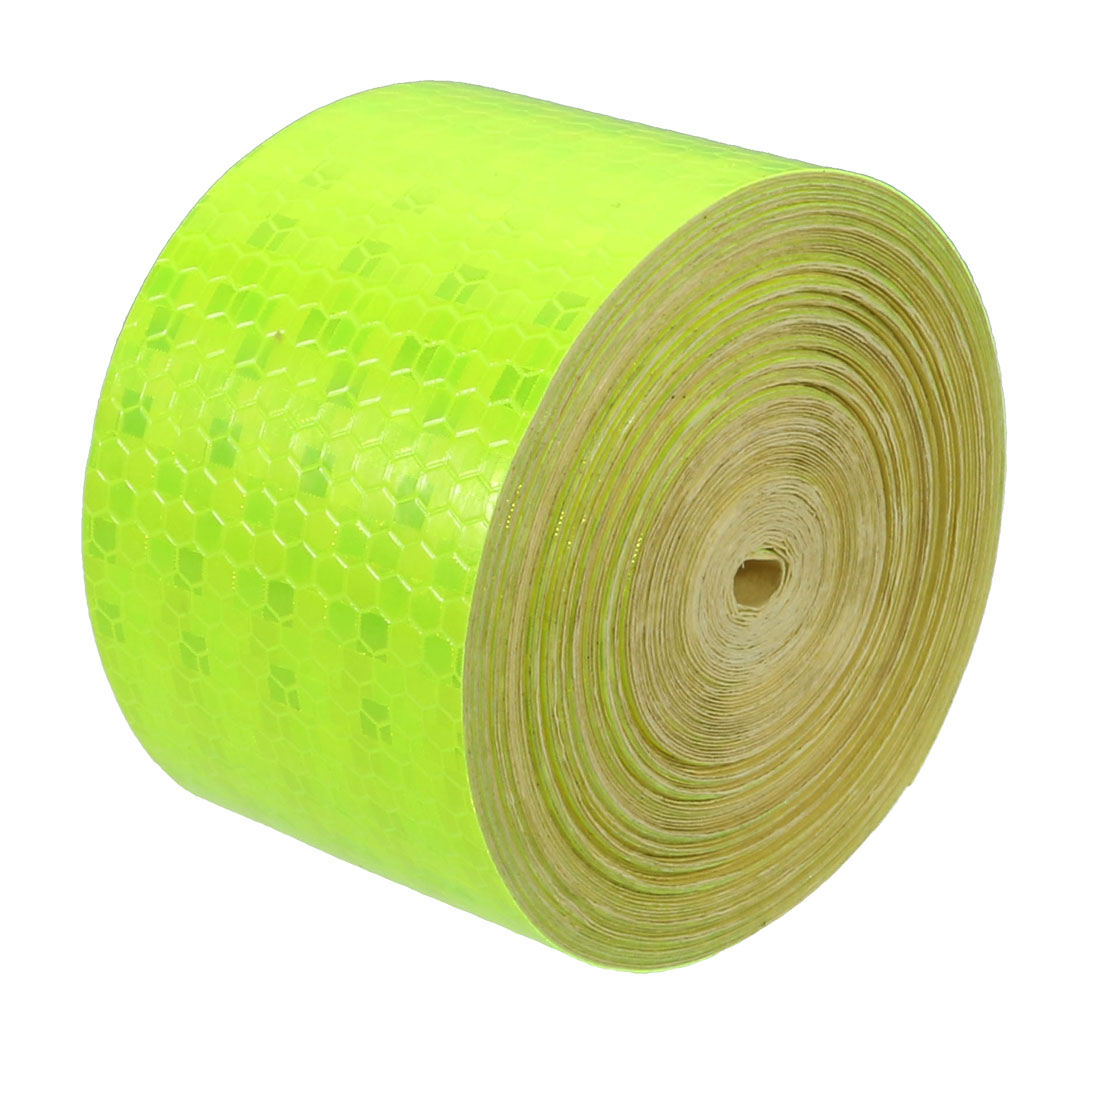 5cm Wide 15M Long Honeycomb Adhesive Reflective Warning Tape Light Yellow